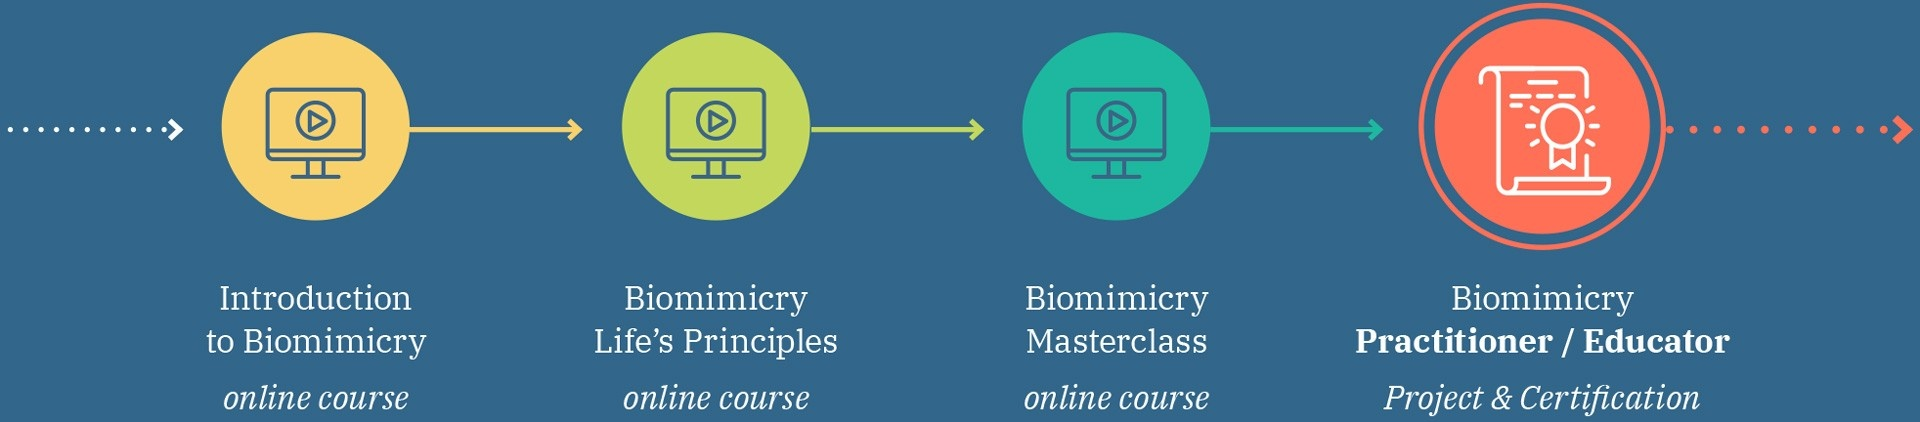 pathway of all biomimicry courses and the biomimicry learning journey